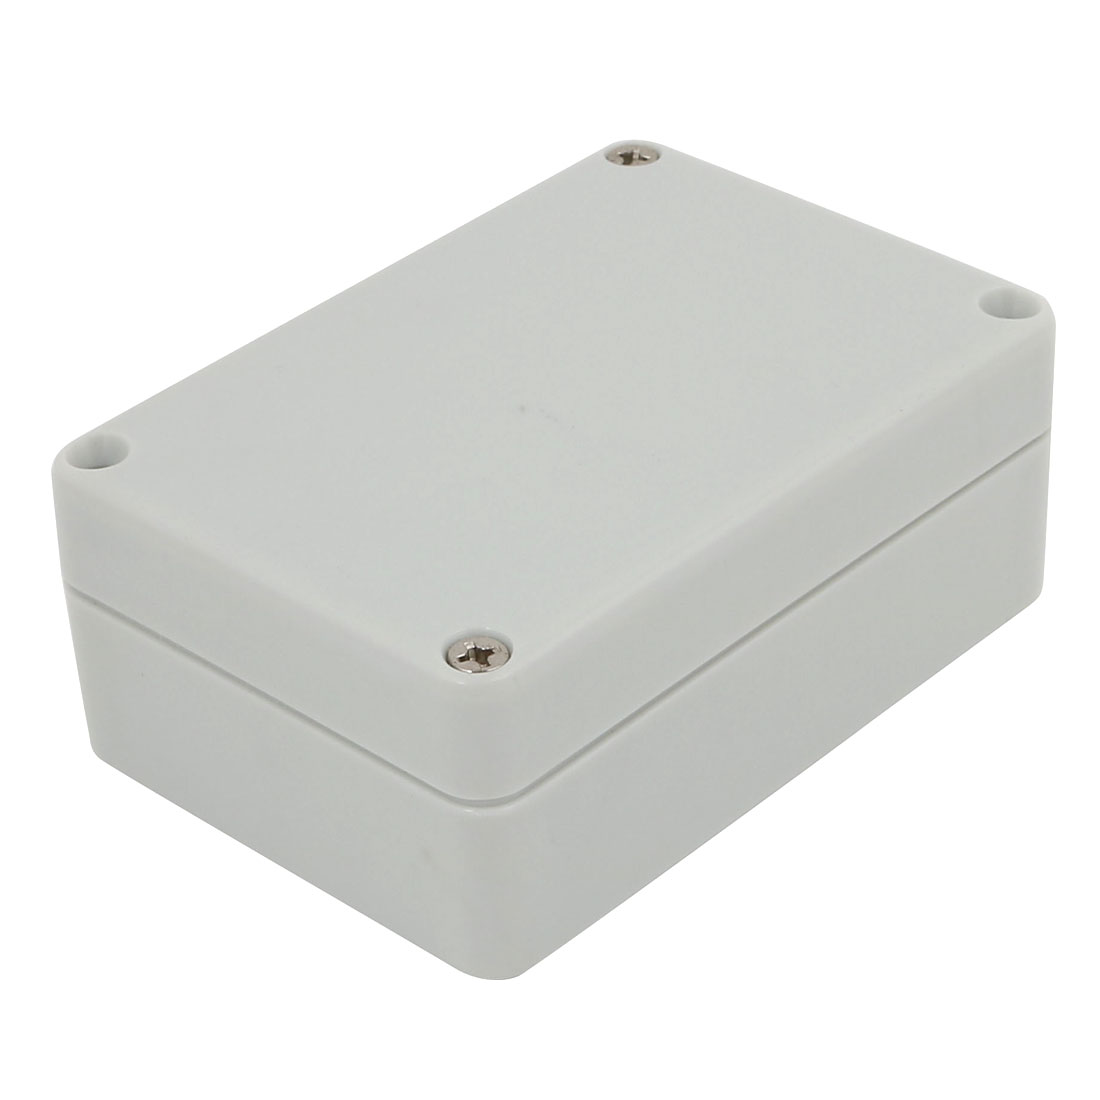 58mm x 83mm x 33mm Electronic ABS Plastic DIY Junction Box Enclosure Case Gray